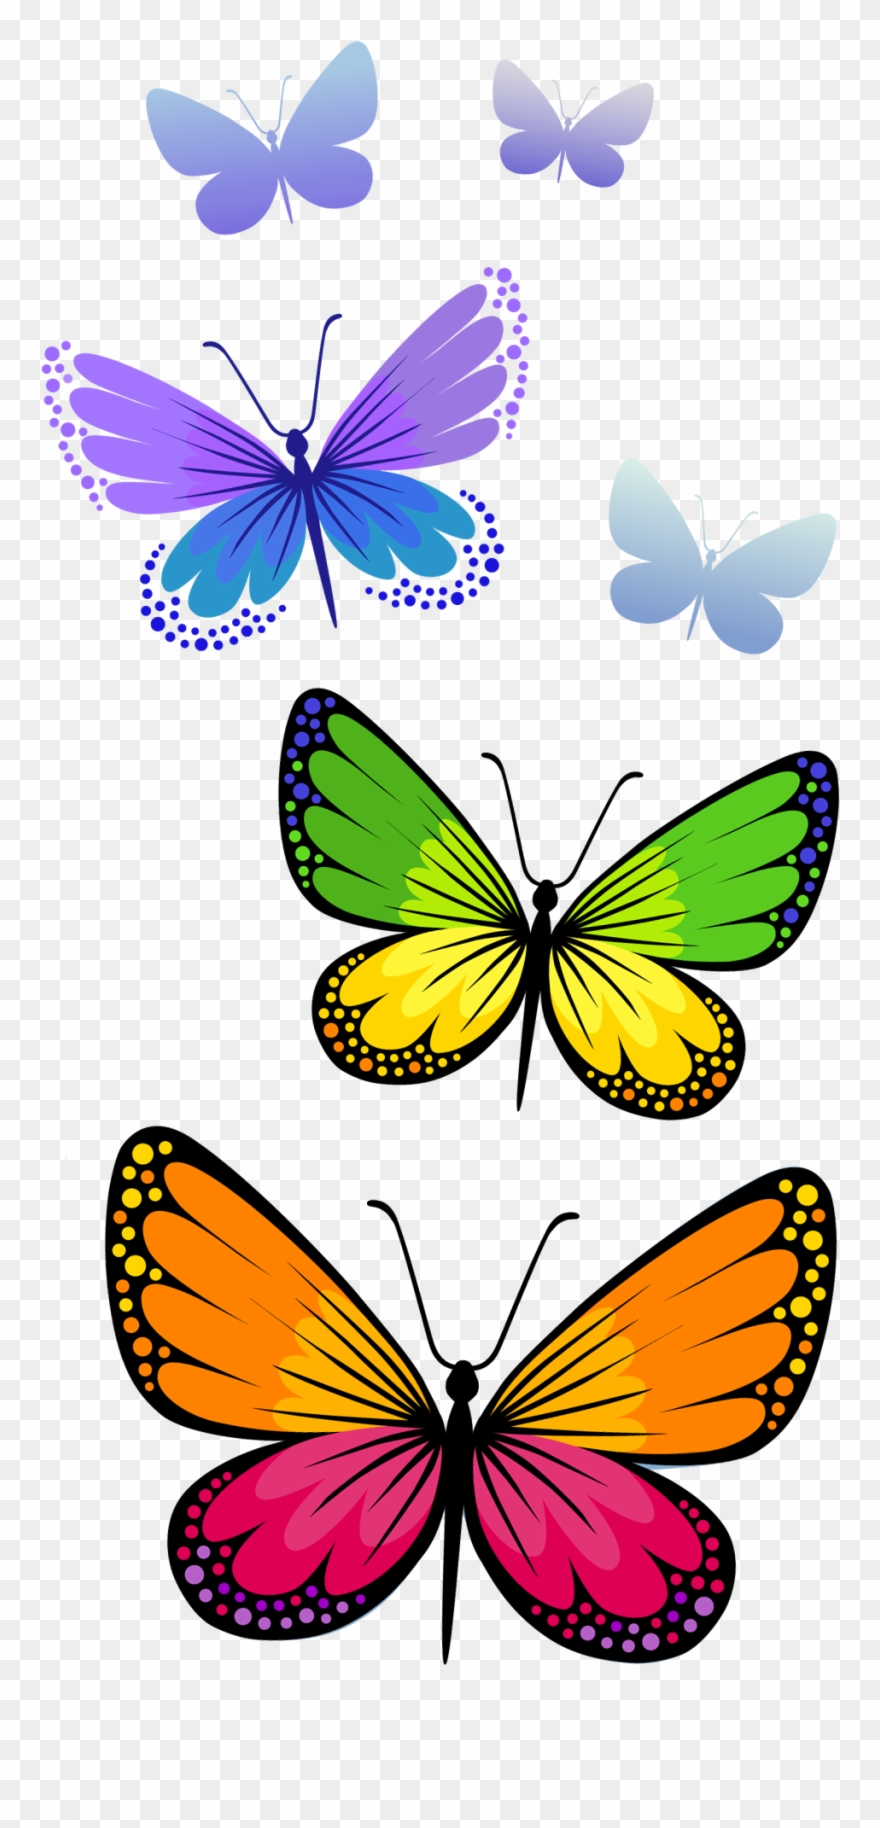 Butterfly cliparts png freeuse download Half Butterfly Cliparts Free Download Clip Art - Png Format ... png freeuse download